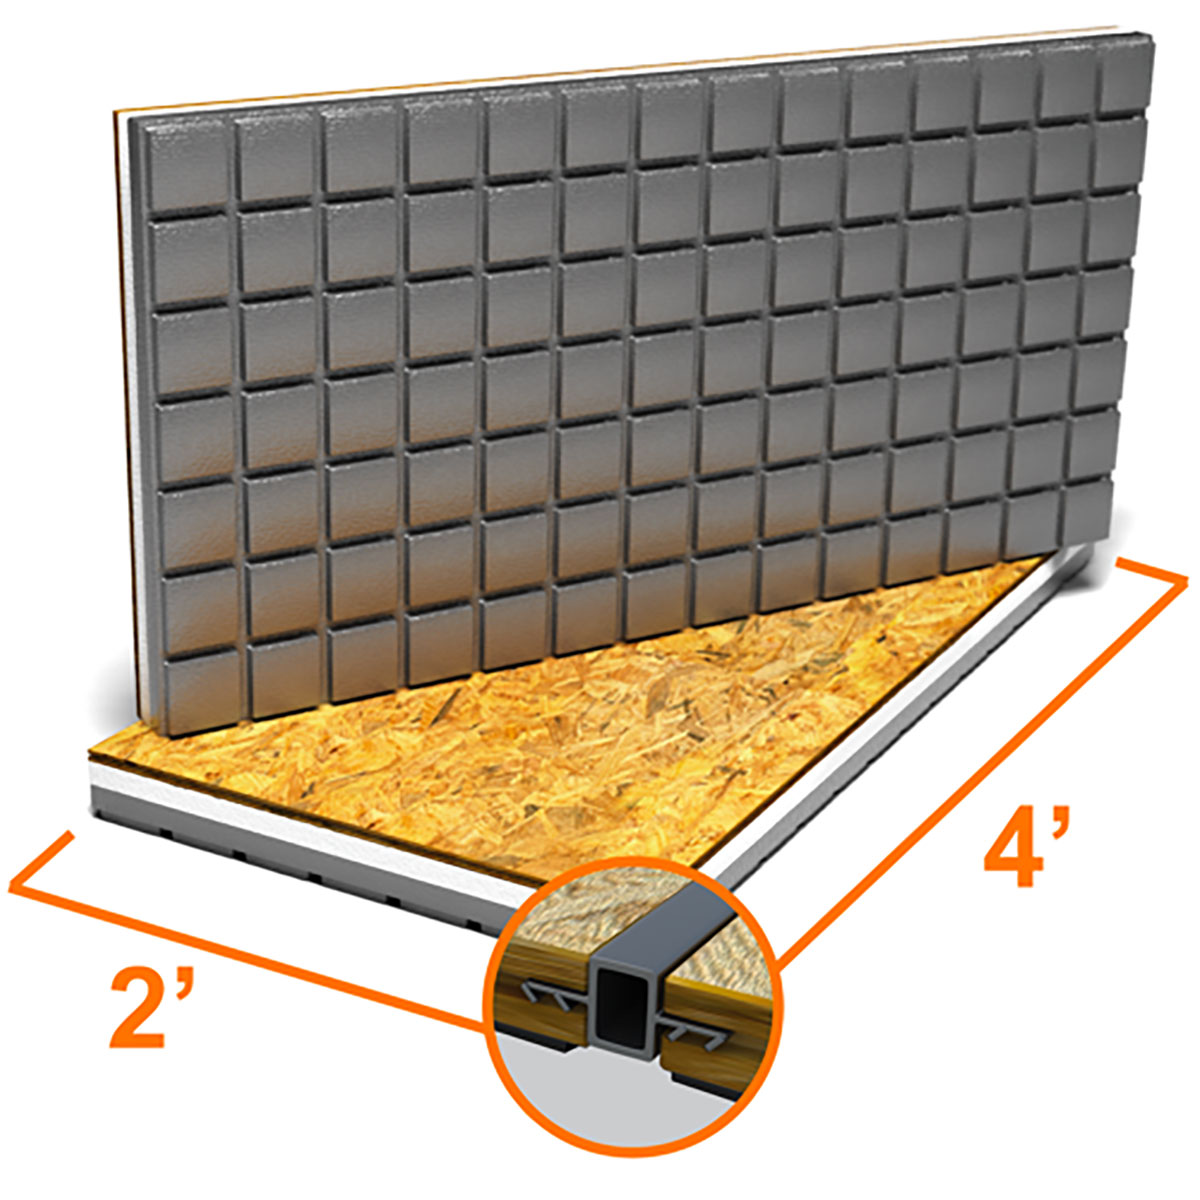 Install A Warm Moisture Resistant Basement Subfloor In A Day: Amdry: Insulated Subfloor Panels For Warmer Floors